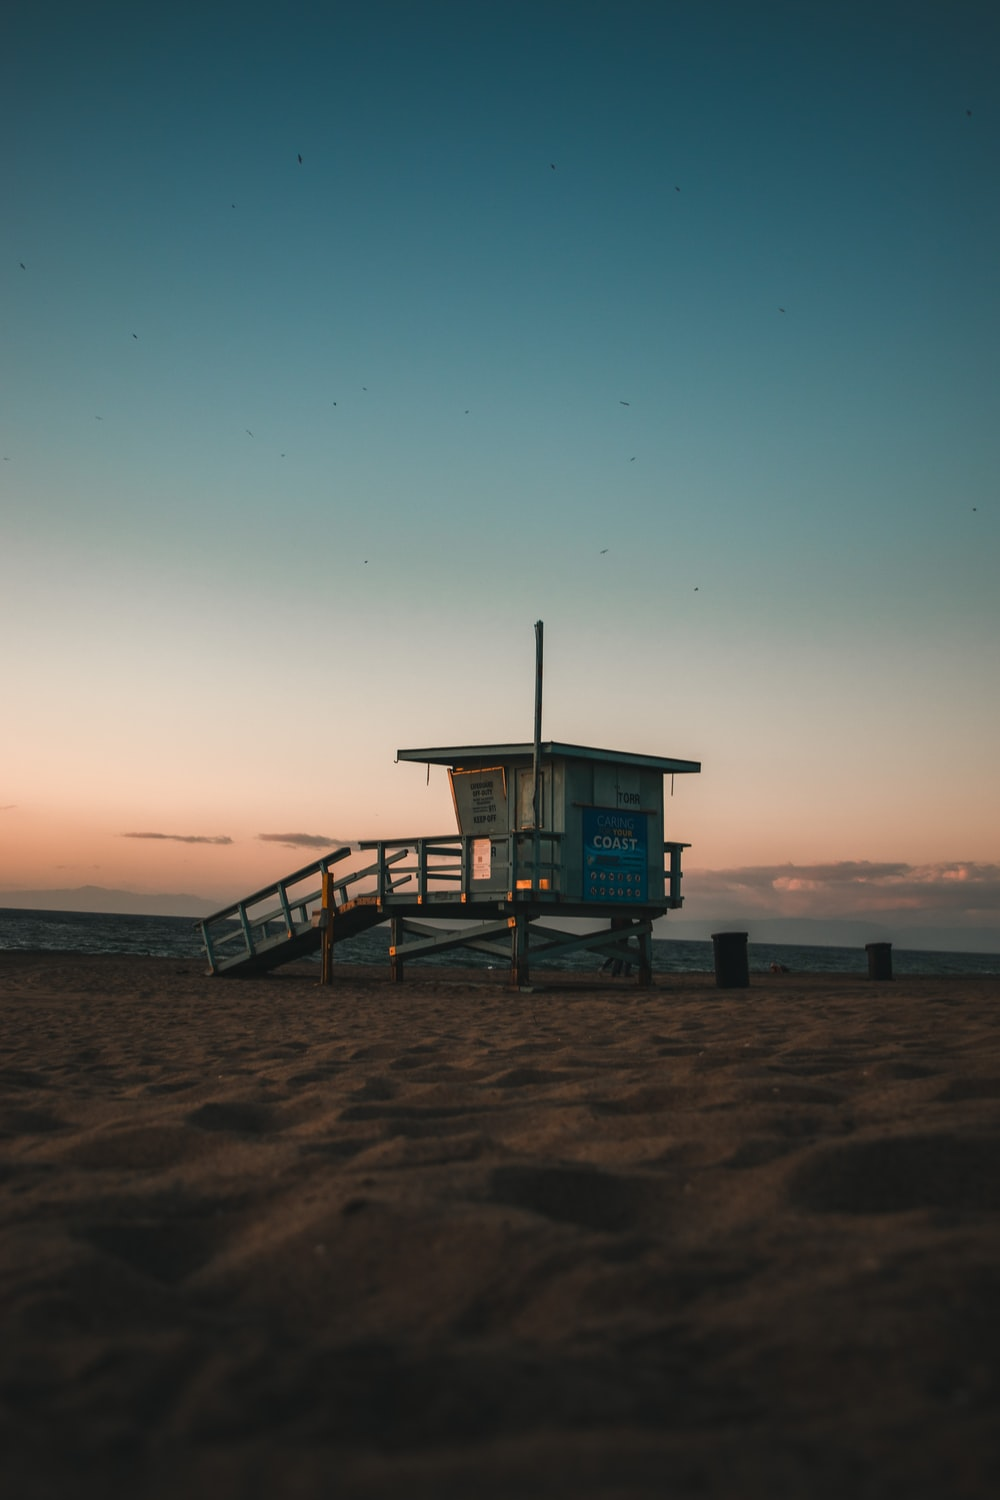 blue lifeguard house on beach during sunset